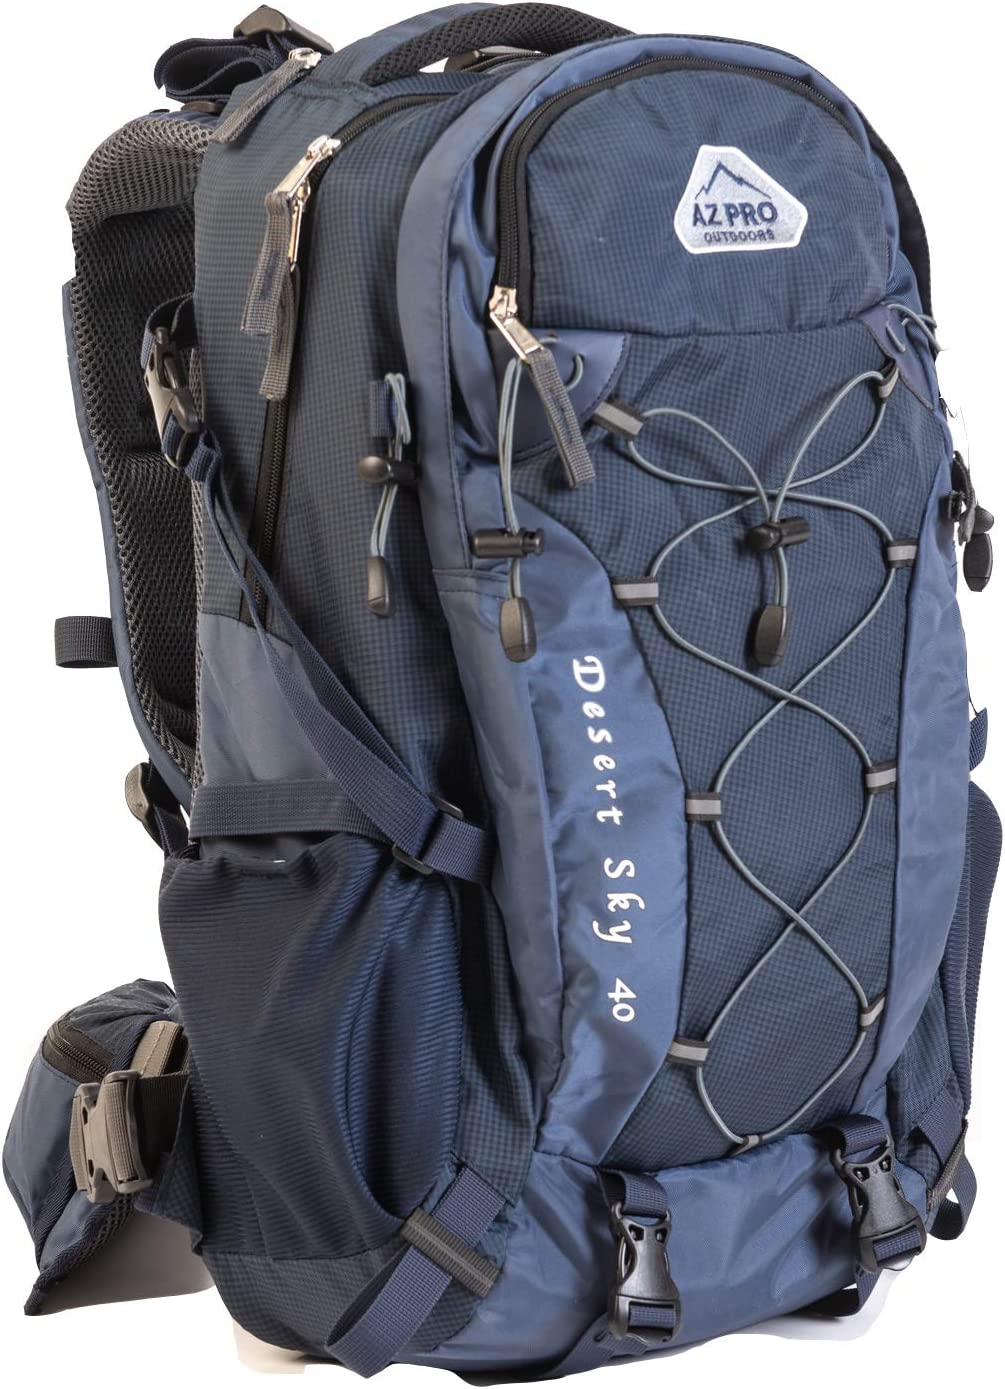 Desert Sky from AZ Pro Dallas High quality new Mall Outdoors Backpack Series Easily 3-Way 40L